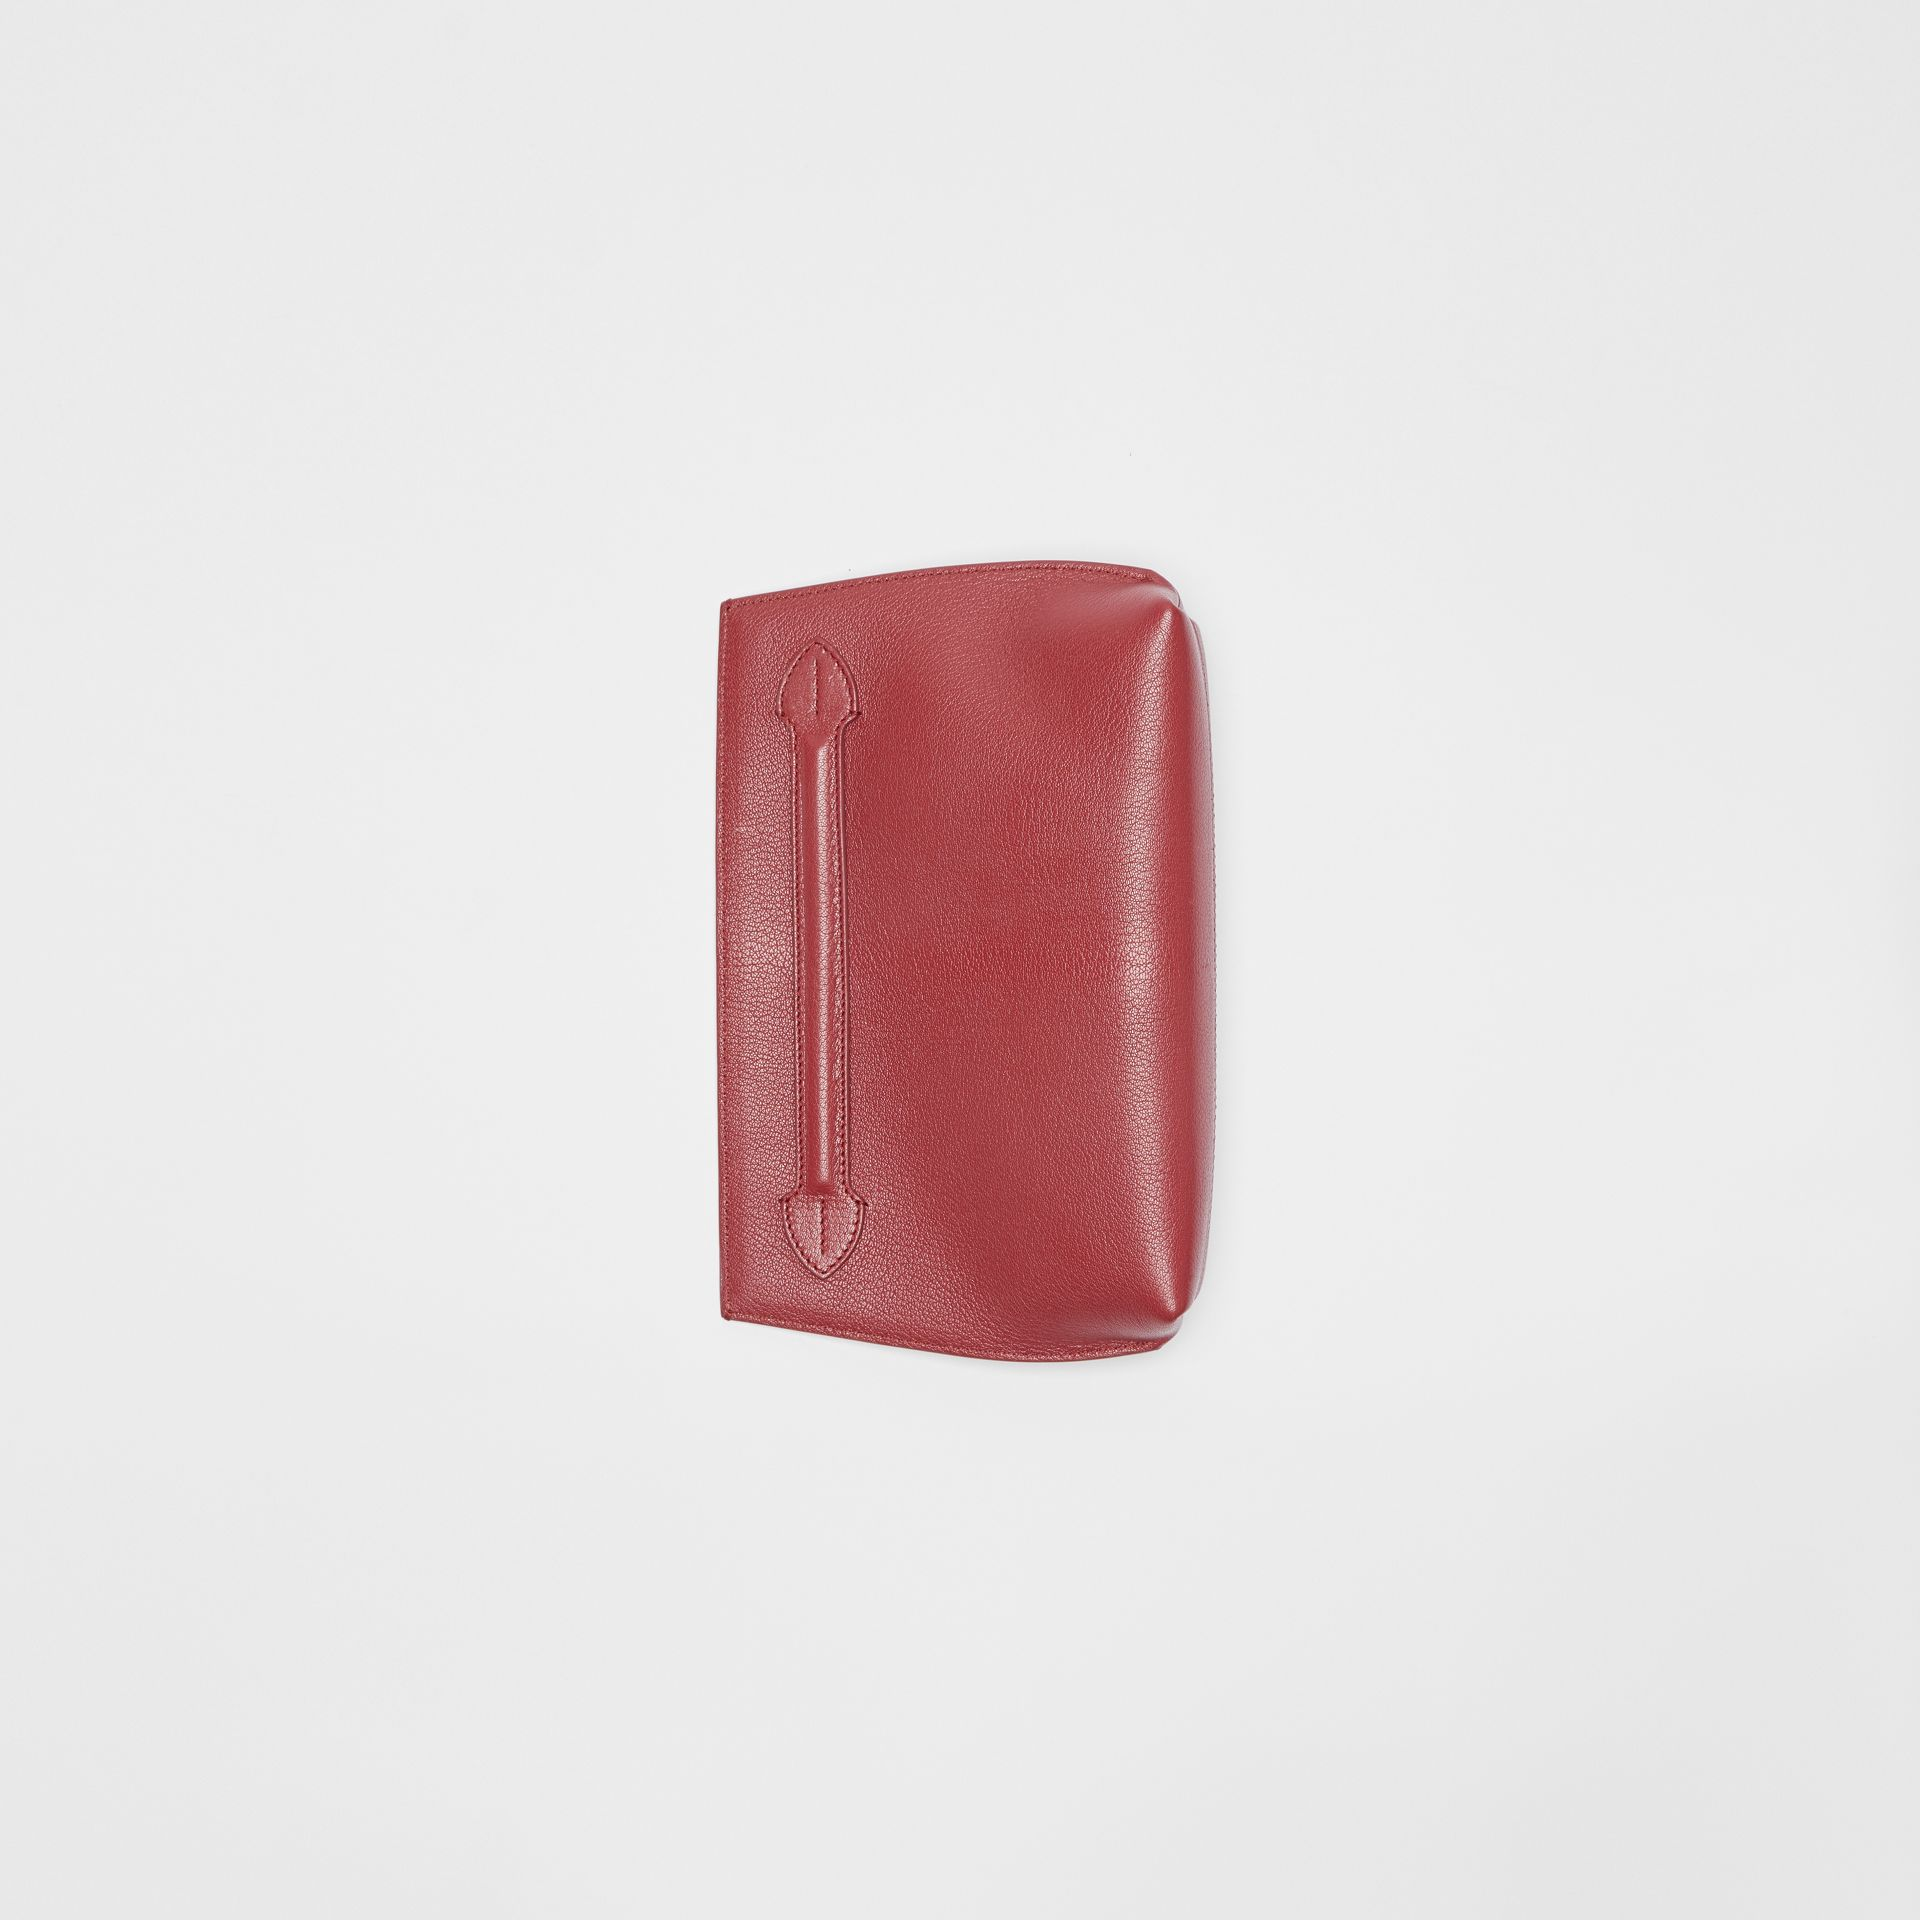 Grainy Leather Wristlet Clutch in Crimson - Women | Burberry United States - gallery image 4